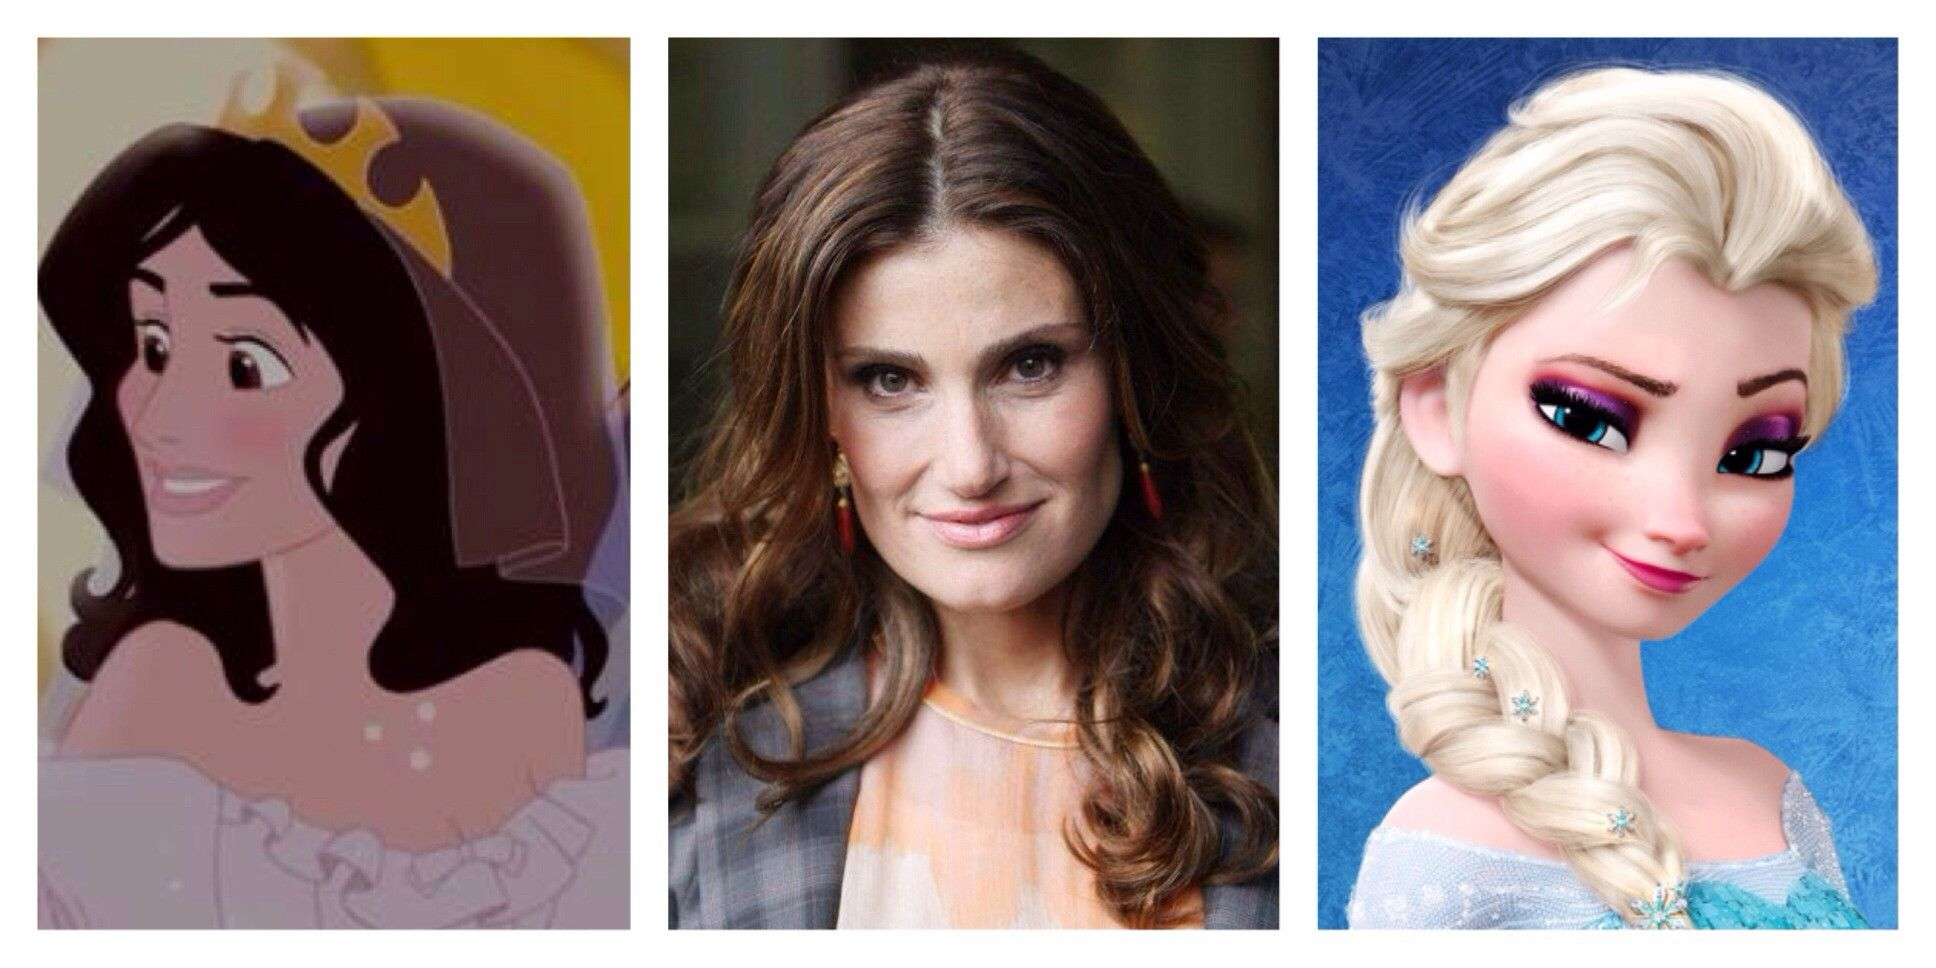 Idina Menzel Next To Both Of Her Disney Animated Characters Too